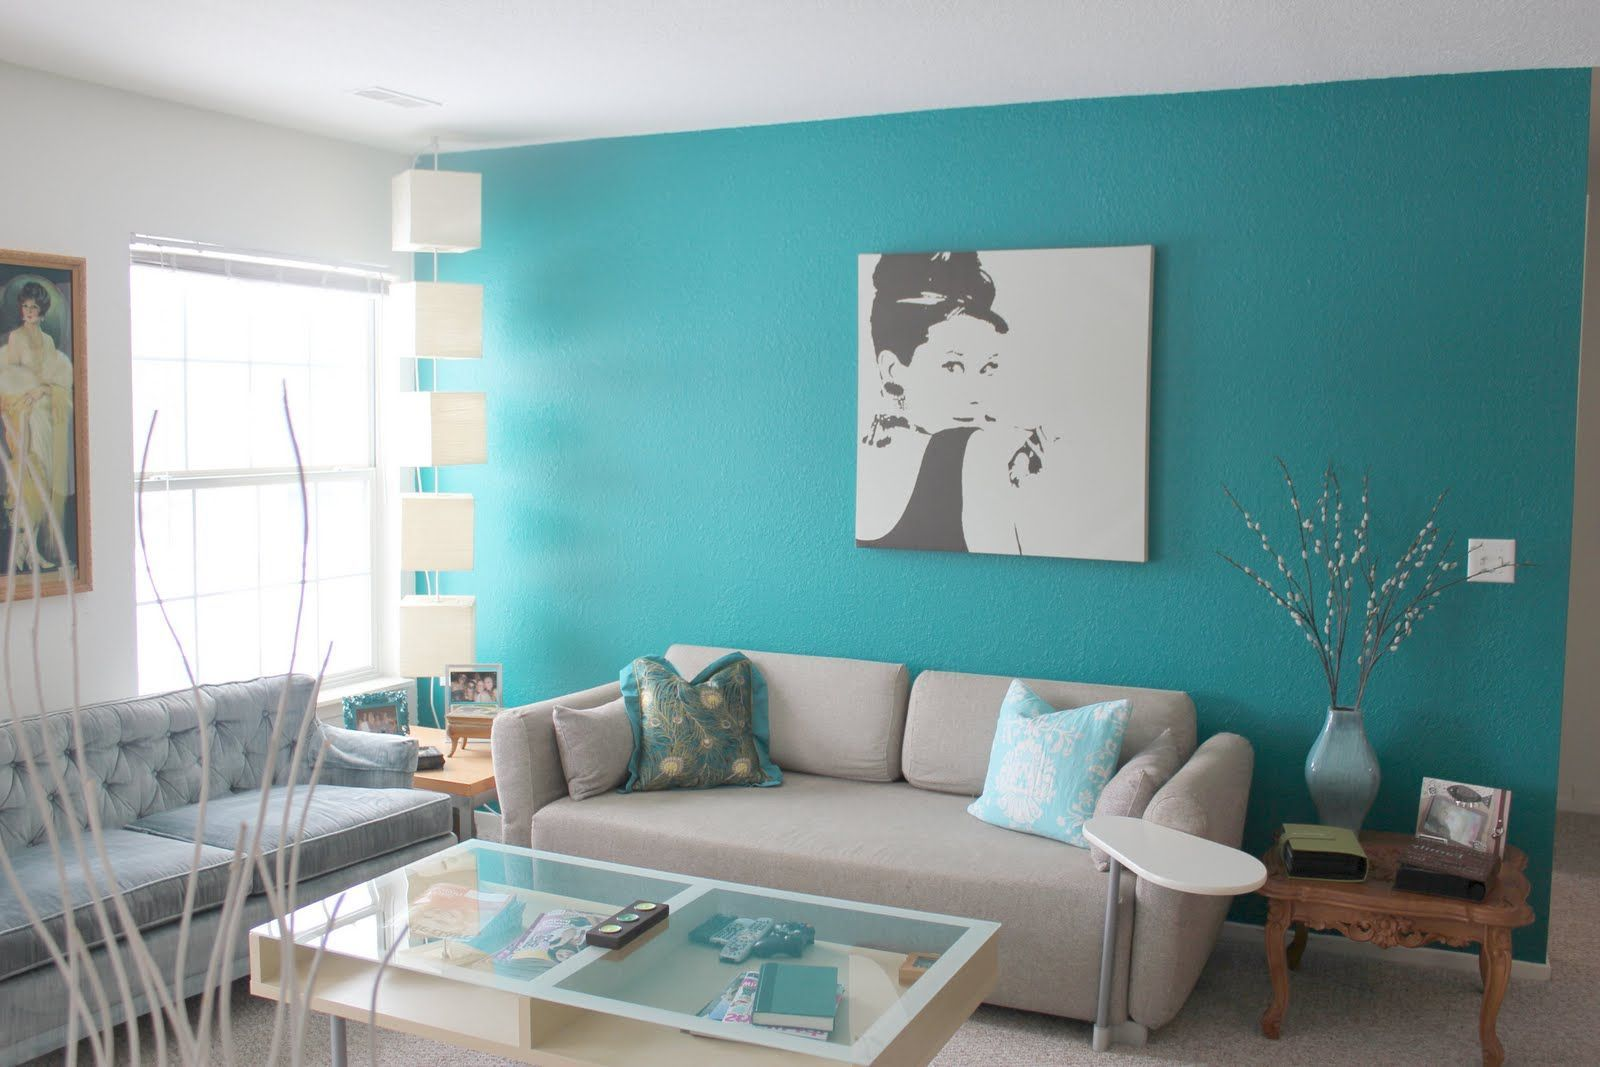 Extraordinary Turquoise Room Ideas Picture | Turquoise living ...